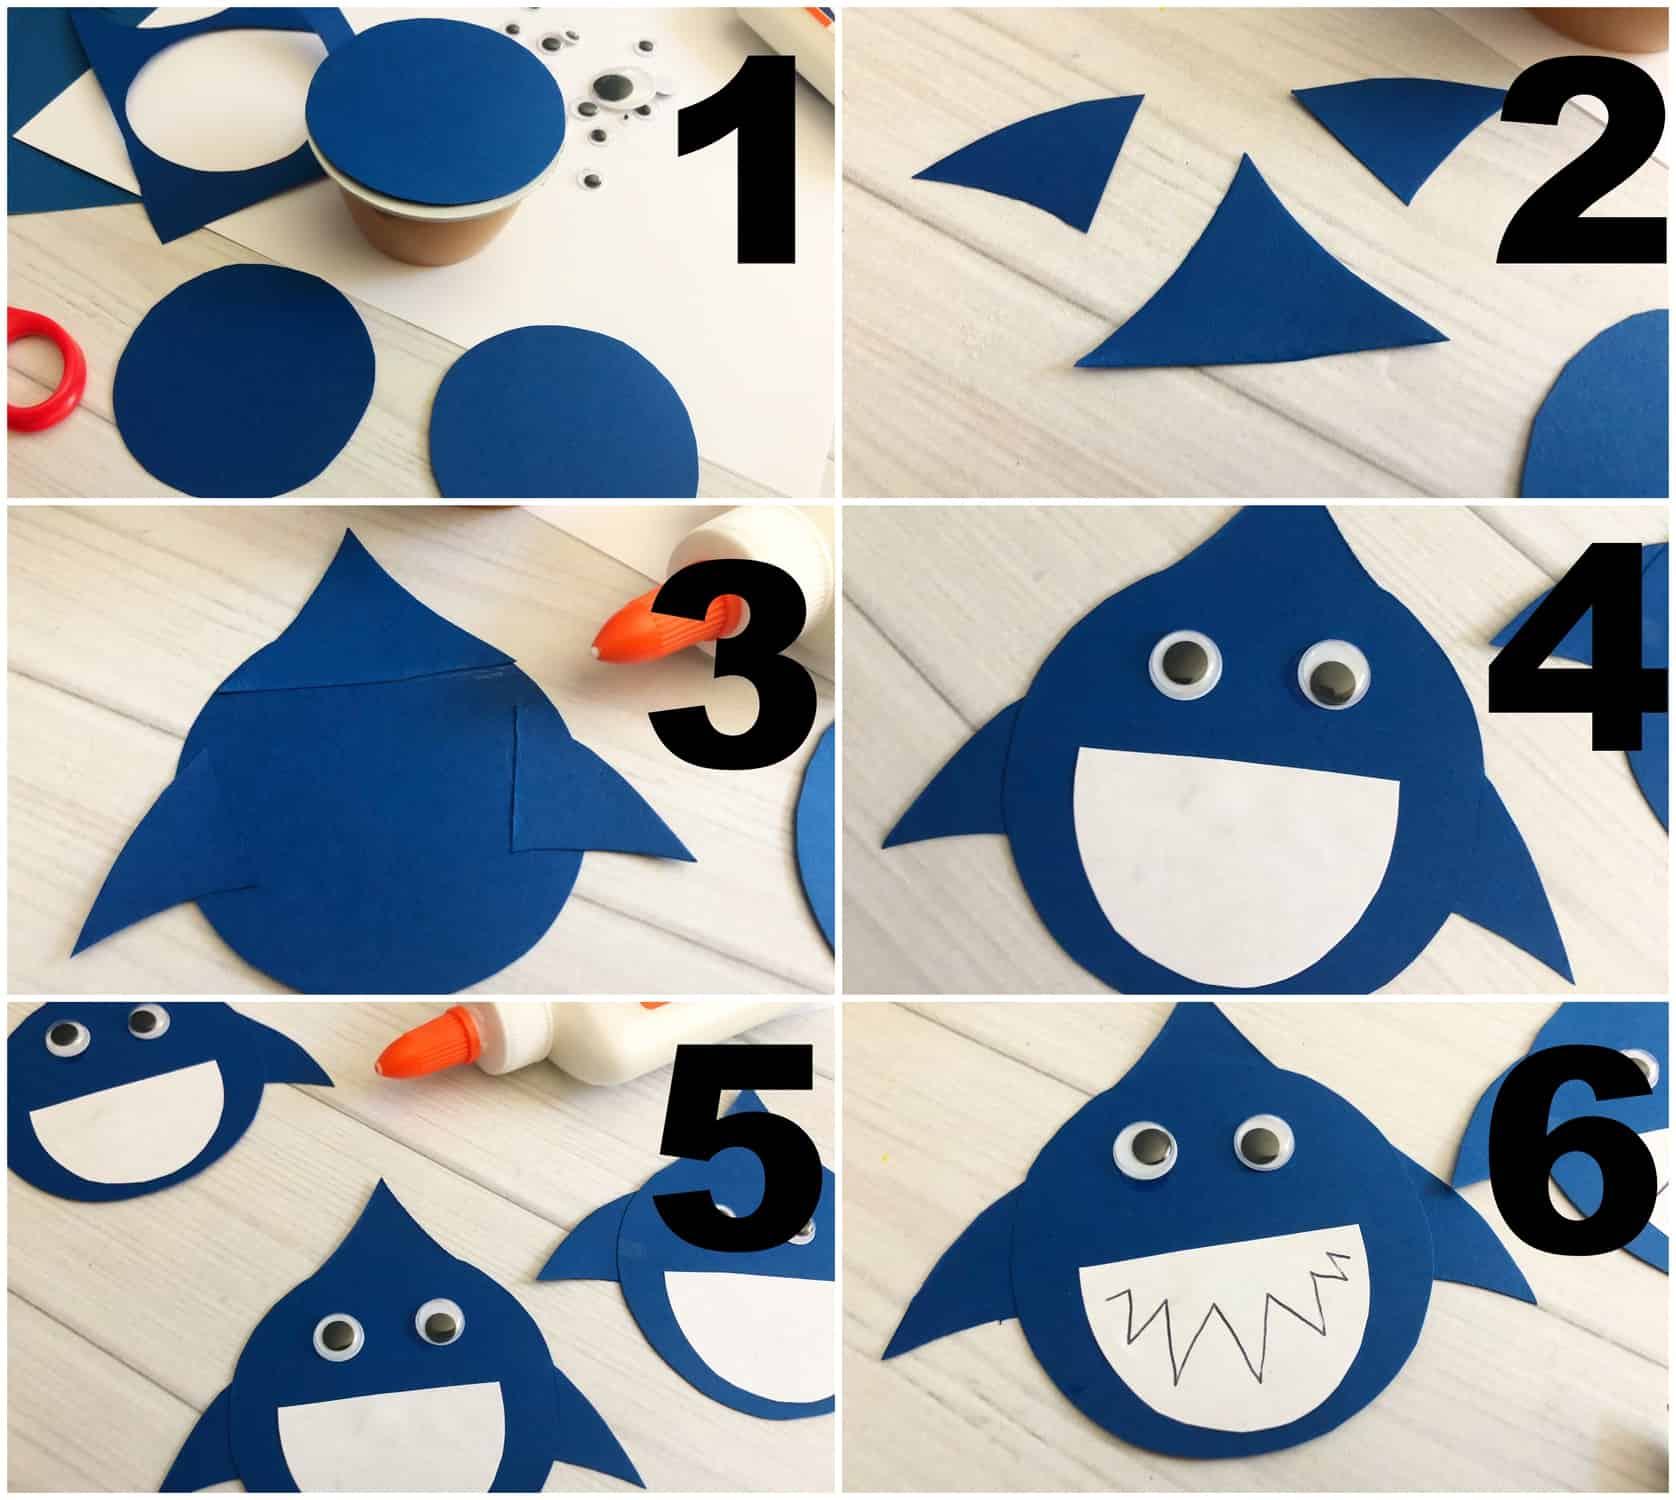 A quick how-to to make any applesauce or pudding or even fruit cup into your very own voracious man-eater. This DIY Shark Applesauce is hilarious and so easy. Your lunch-box-eater will love it. #nerdymammablog #shark #sharkweek #applesauce #lunchbox